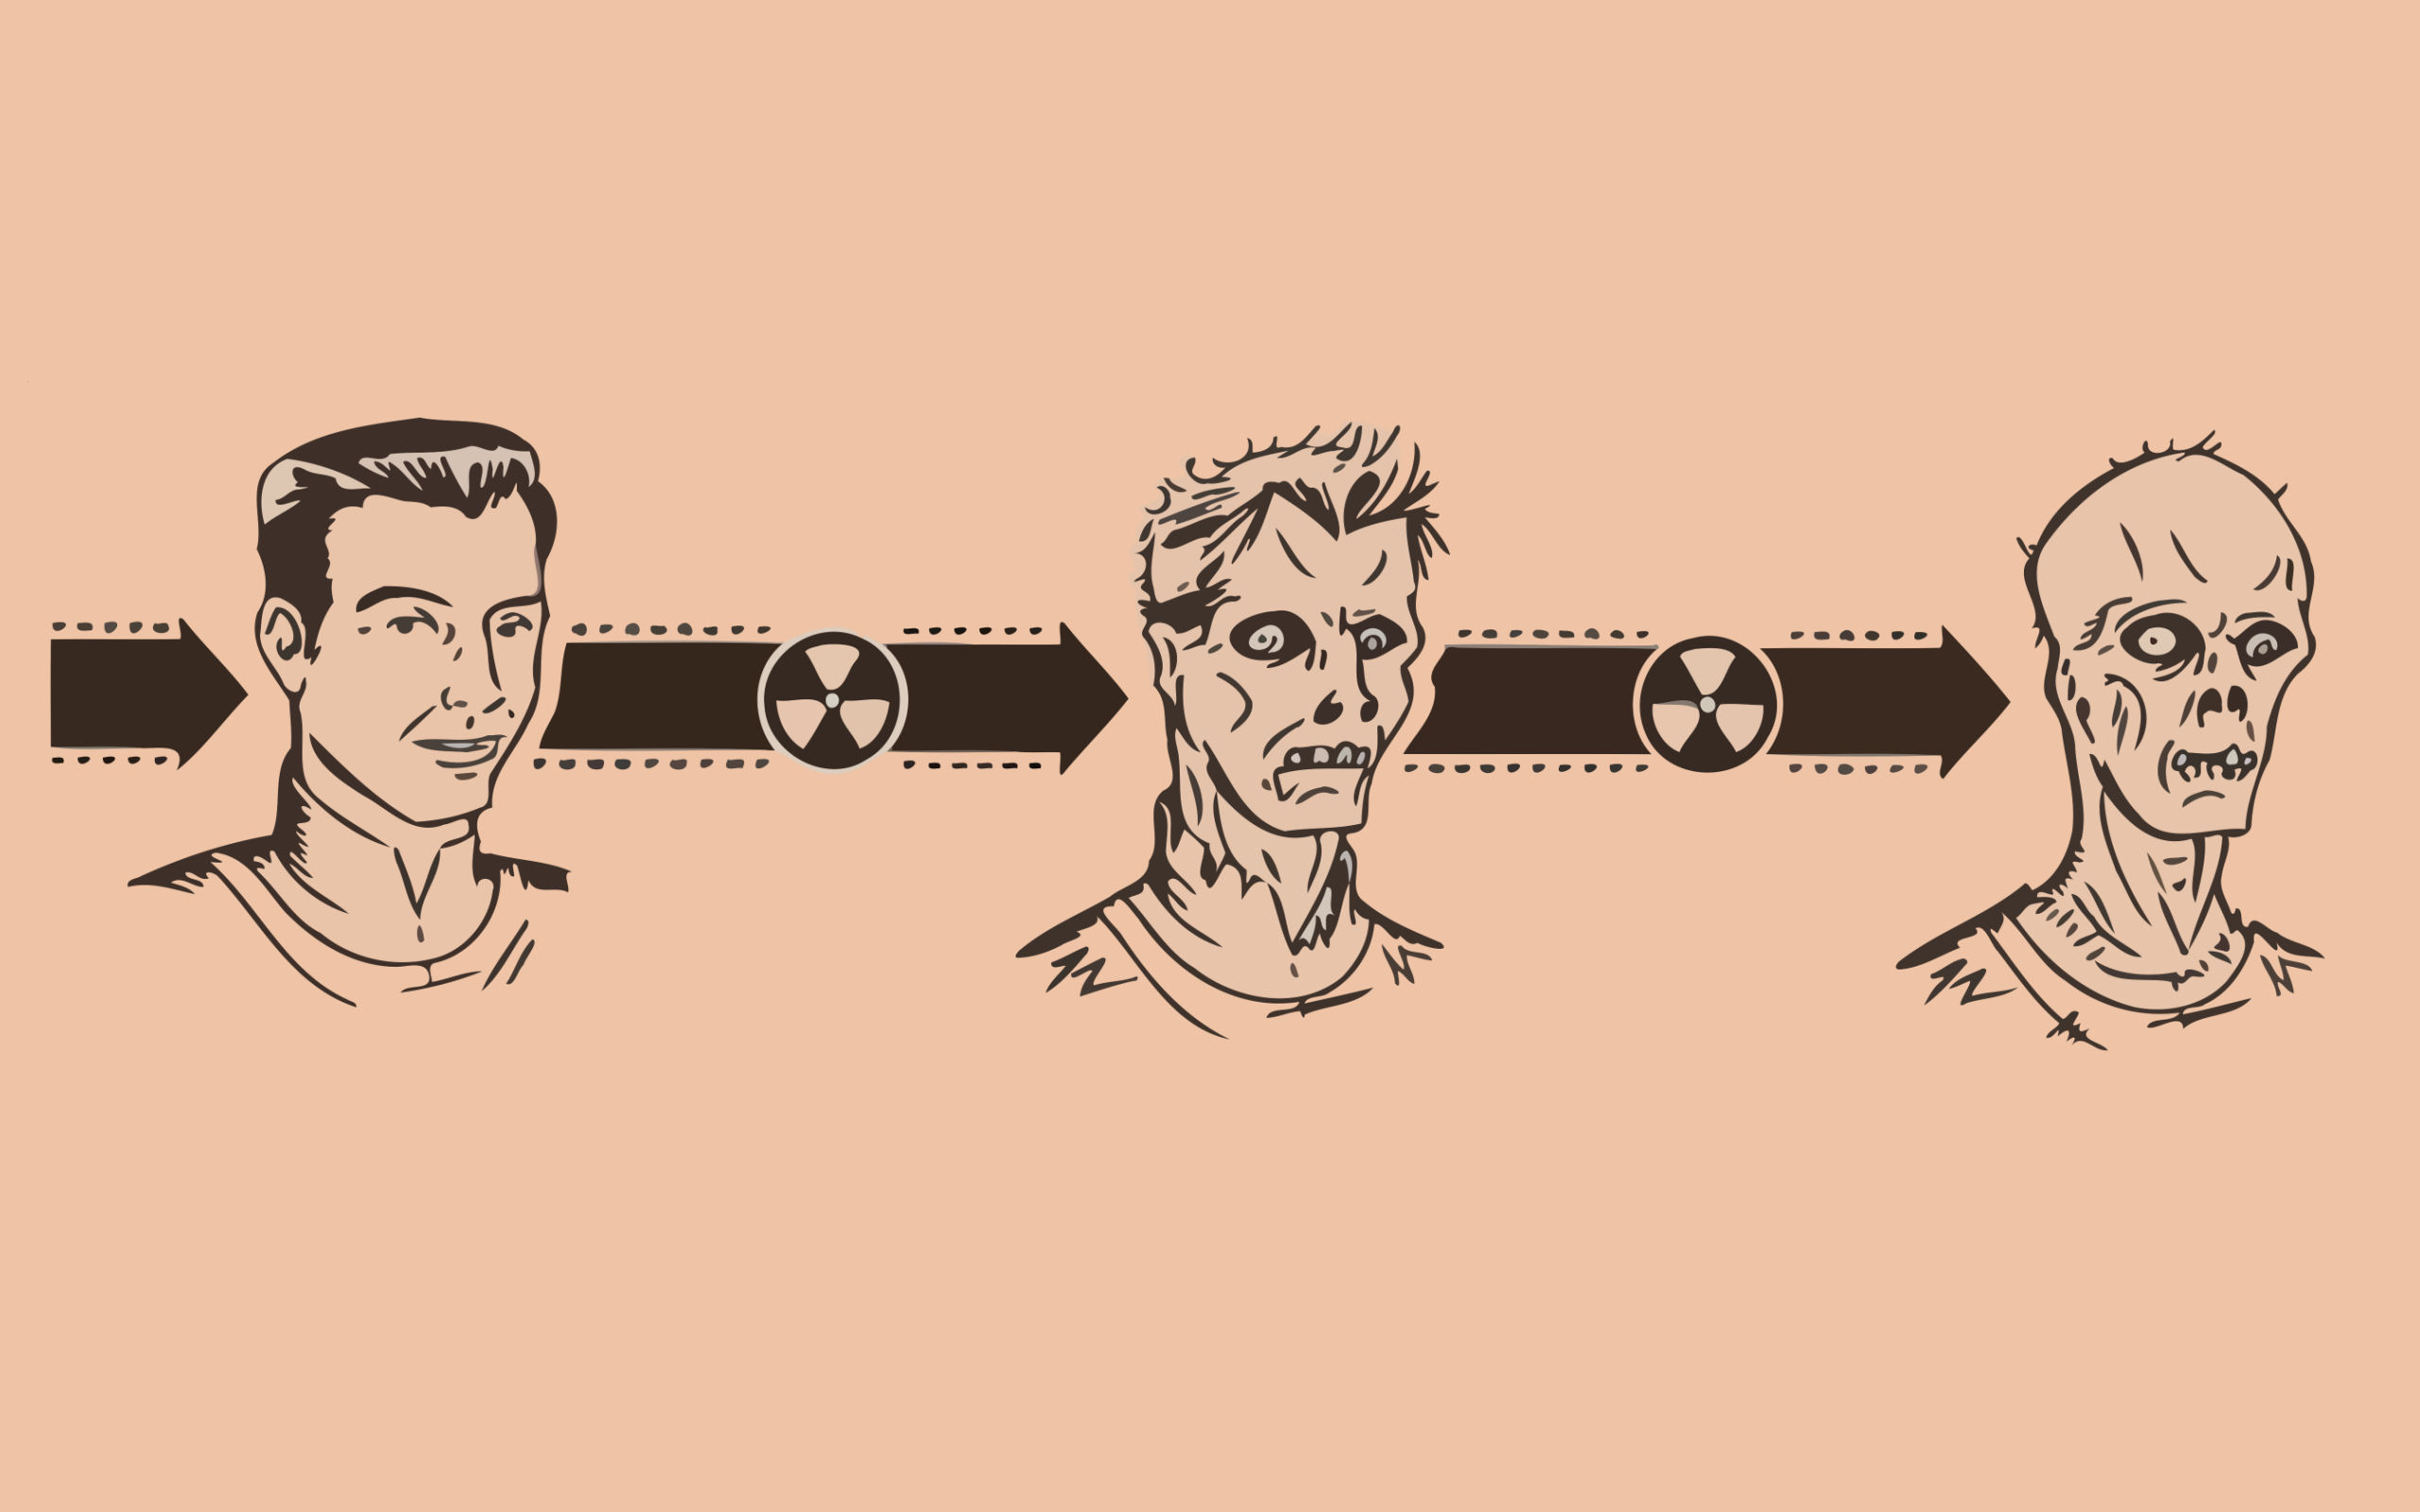 Backgrounds In High Quality: Radiation by Audria Jara, November 30, 2013